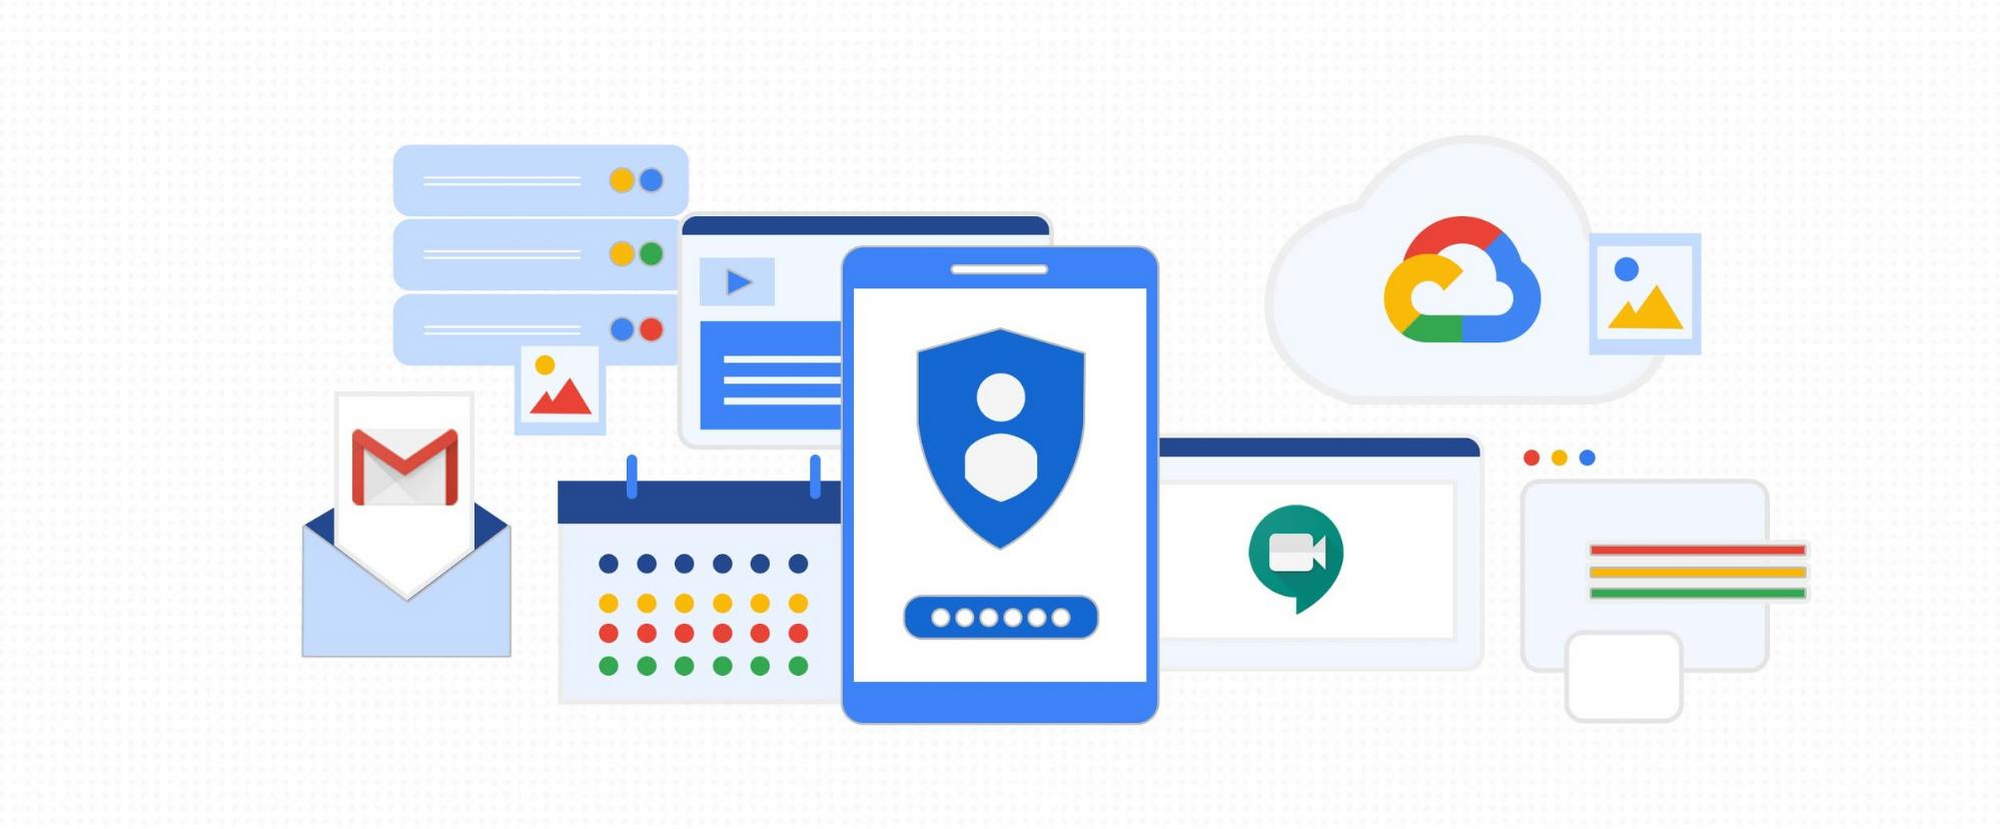 Use BYOD safely in G Suite with these 6 controls